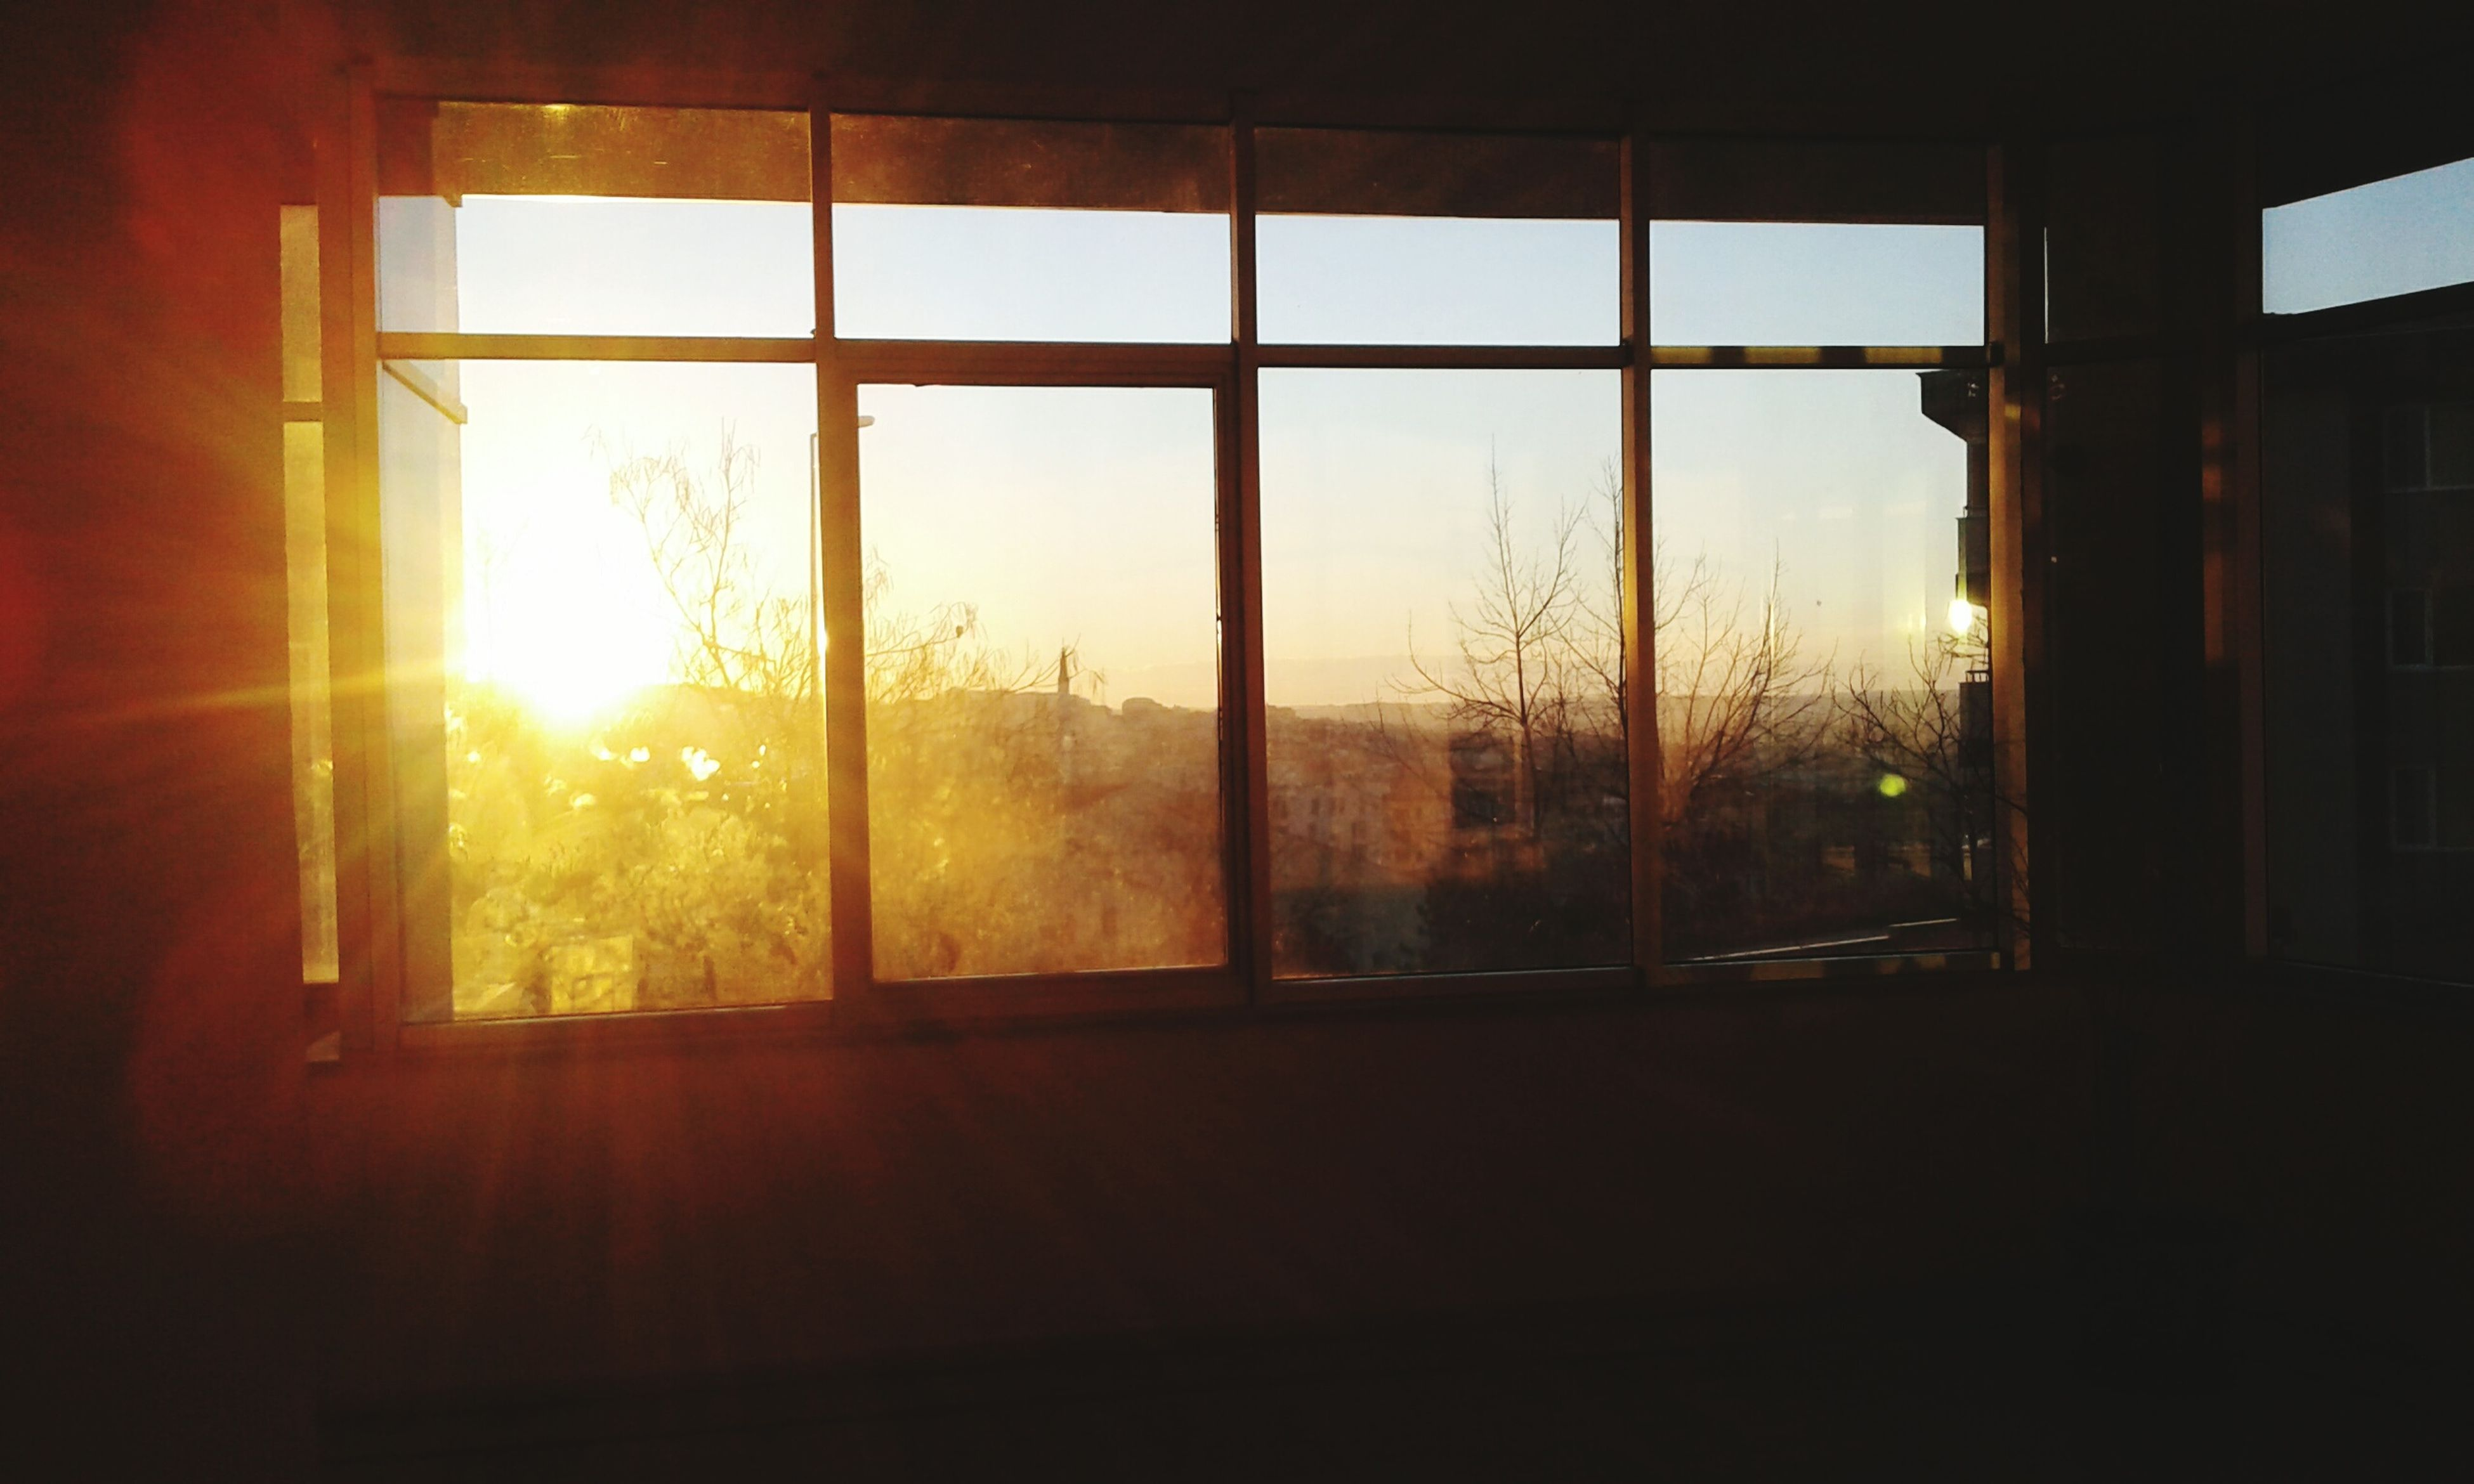 window, glass - material, transparent, indoors, sunlight, sunset, sun, no people, window frame, day, tree, looking through window, sunbeam, nature, sky, close-up, architecture